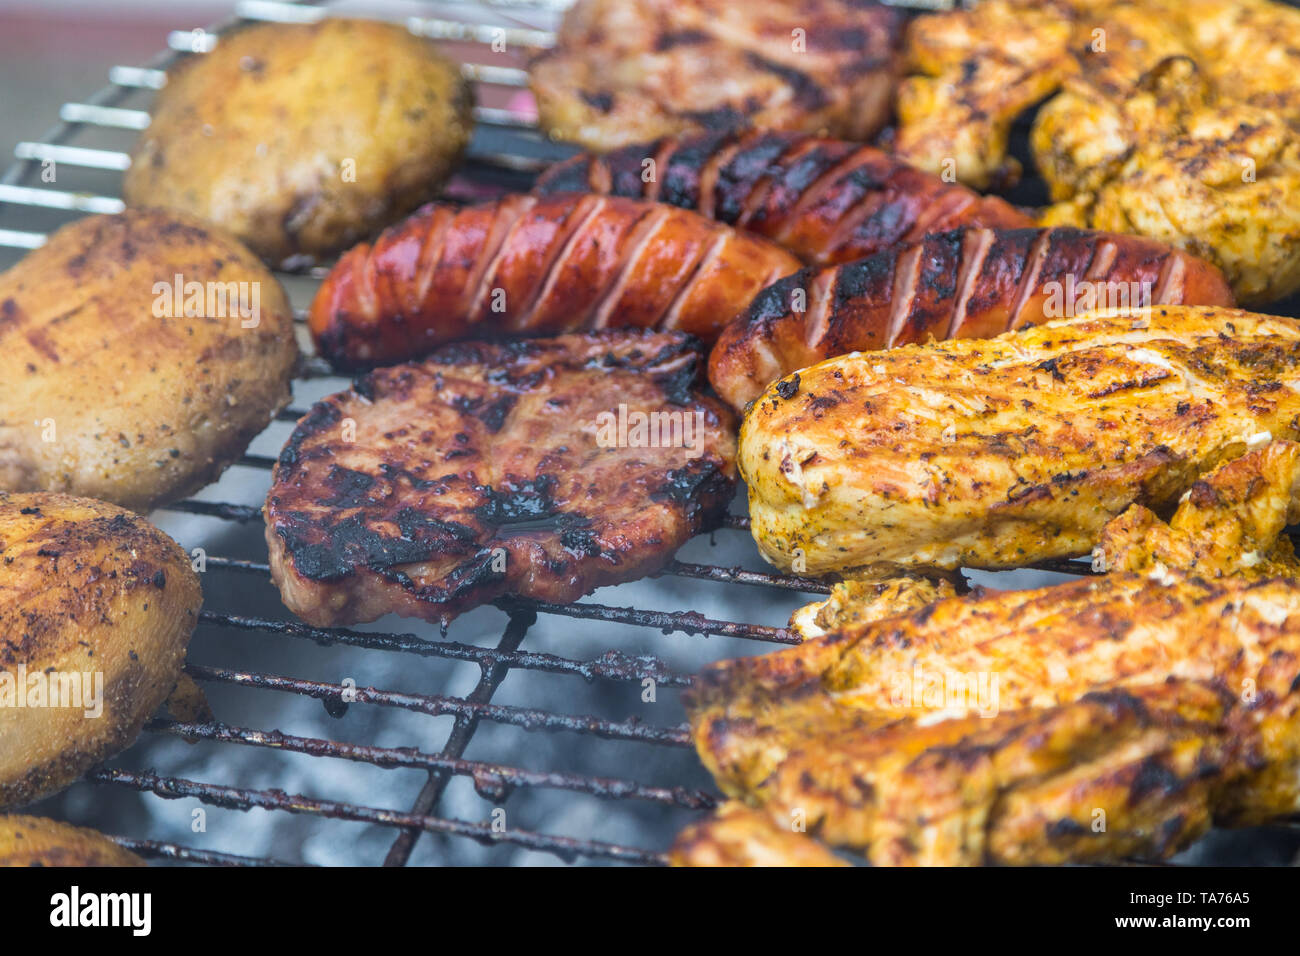 Assorted delicious grilled meat with potatoes over the coals on a barbecue. - Stock Image